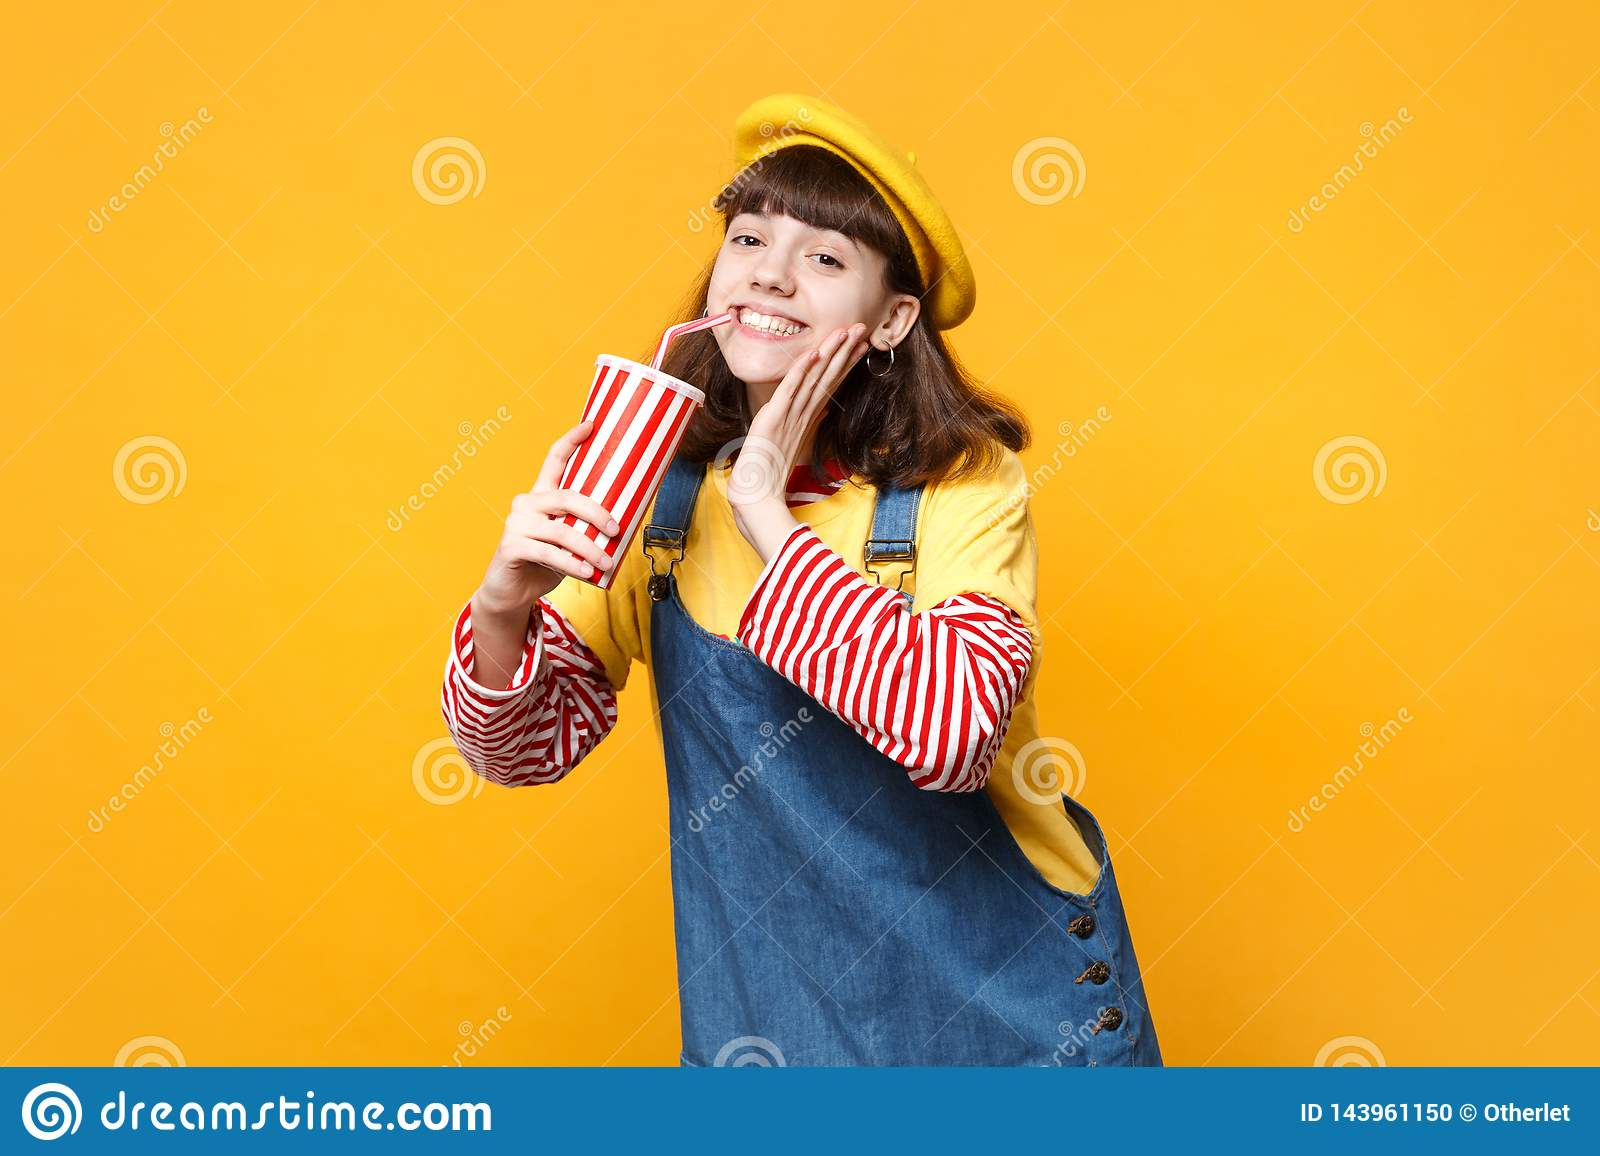 Cheerful girl teenager in french beret, denim sundress hold plastic cup of cola or soda put hand on cheek isolated on